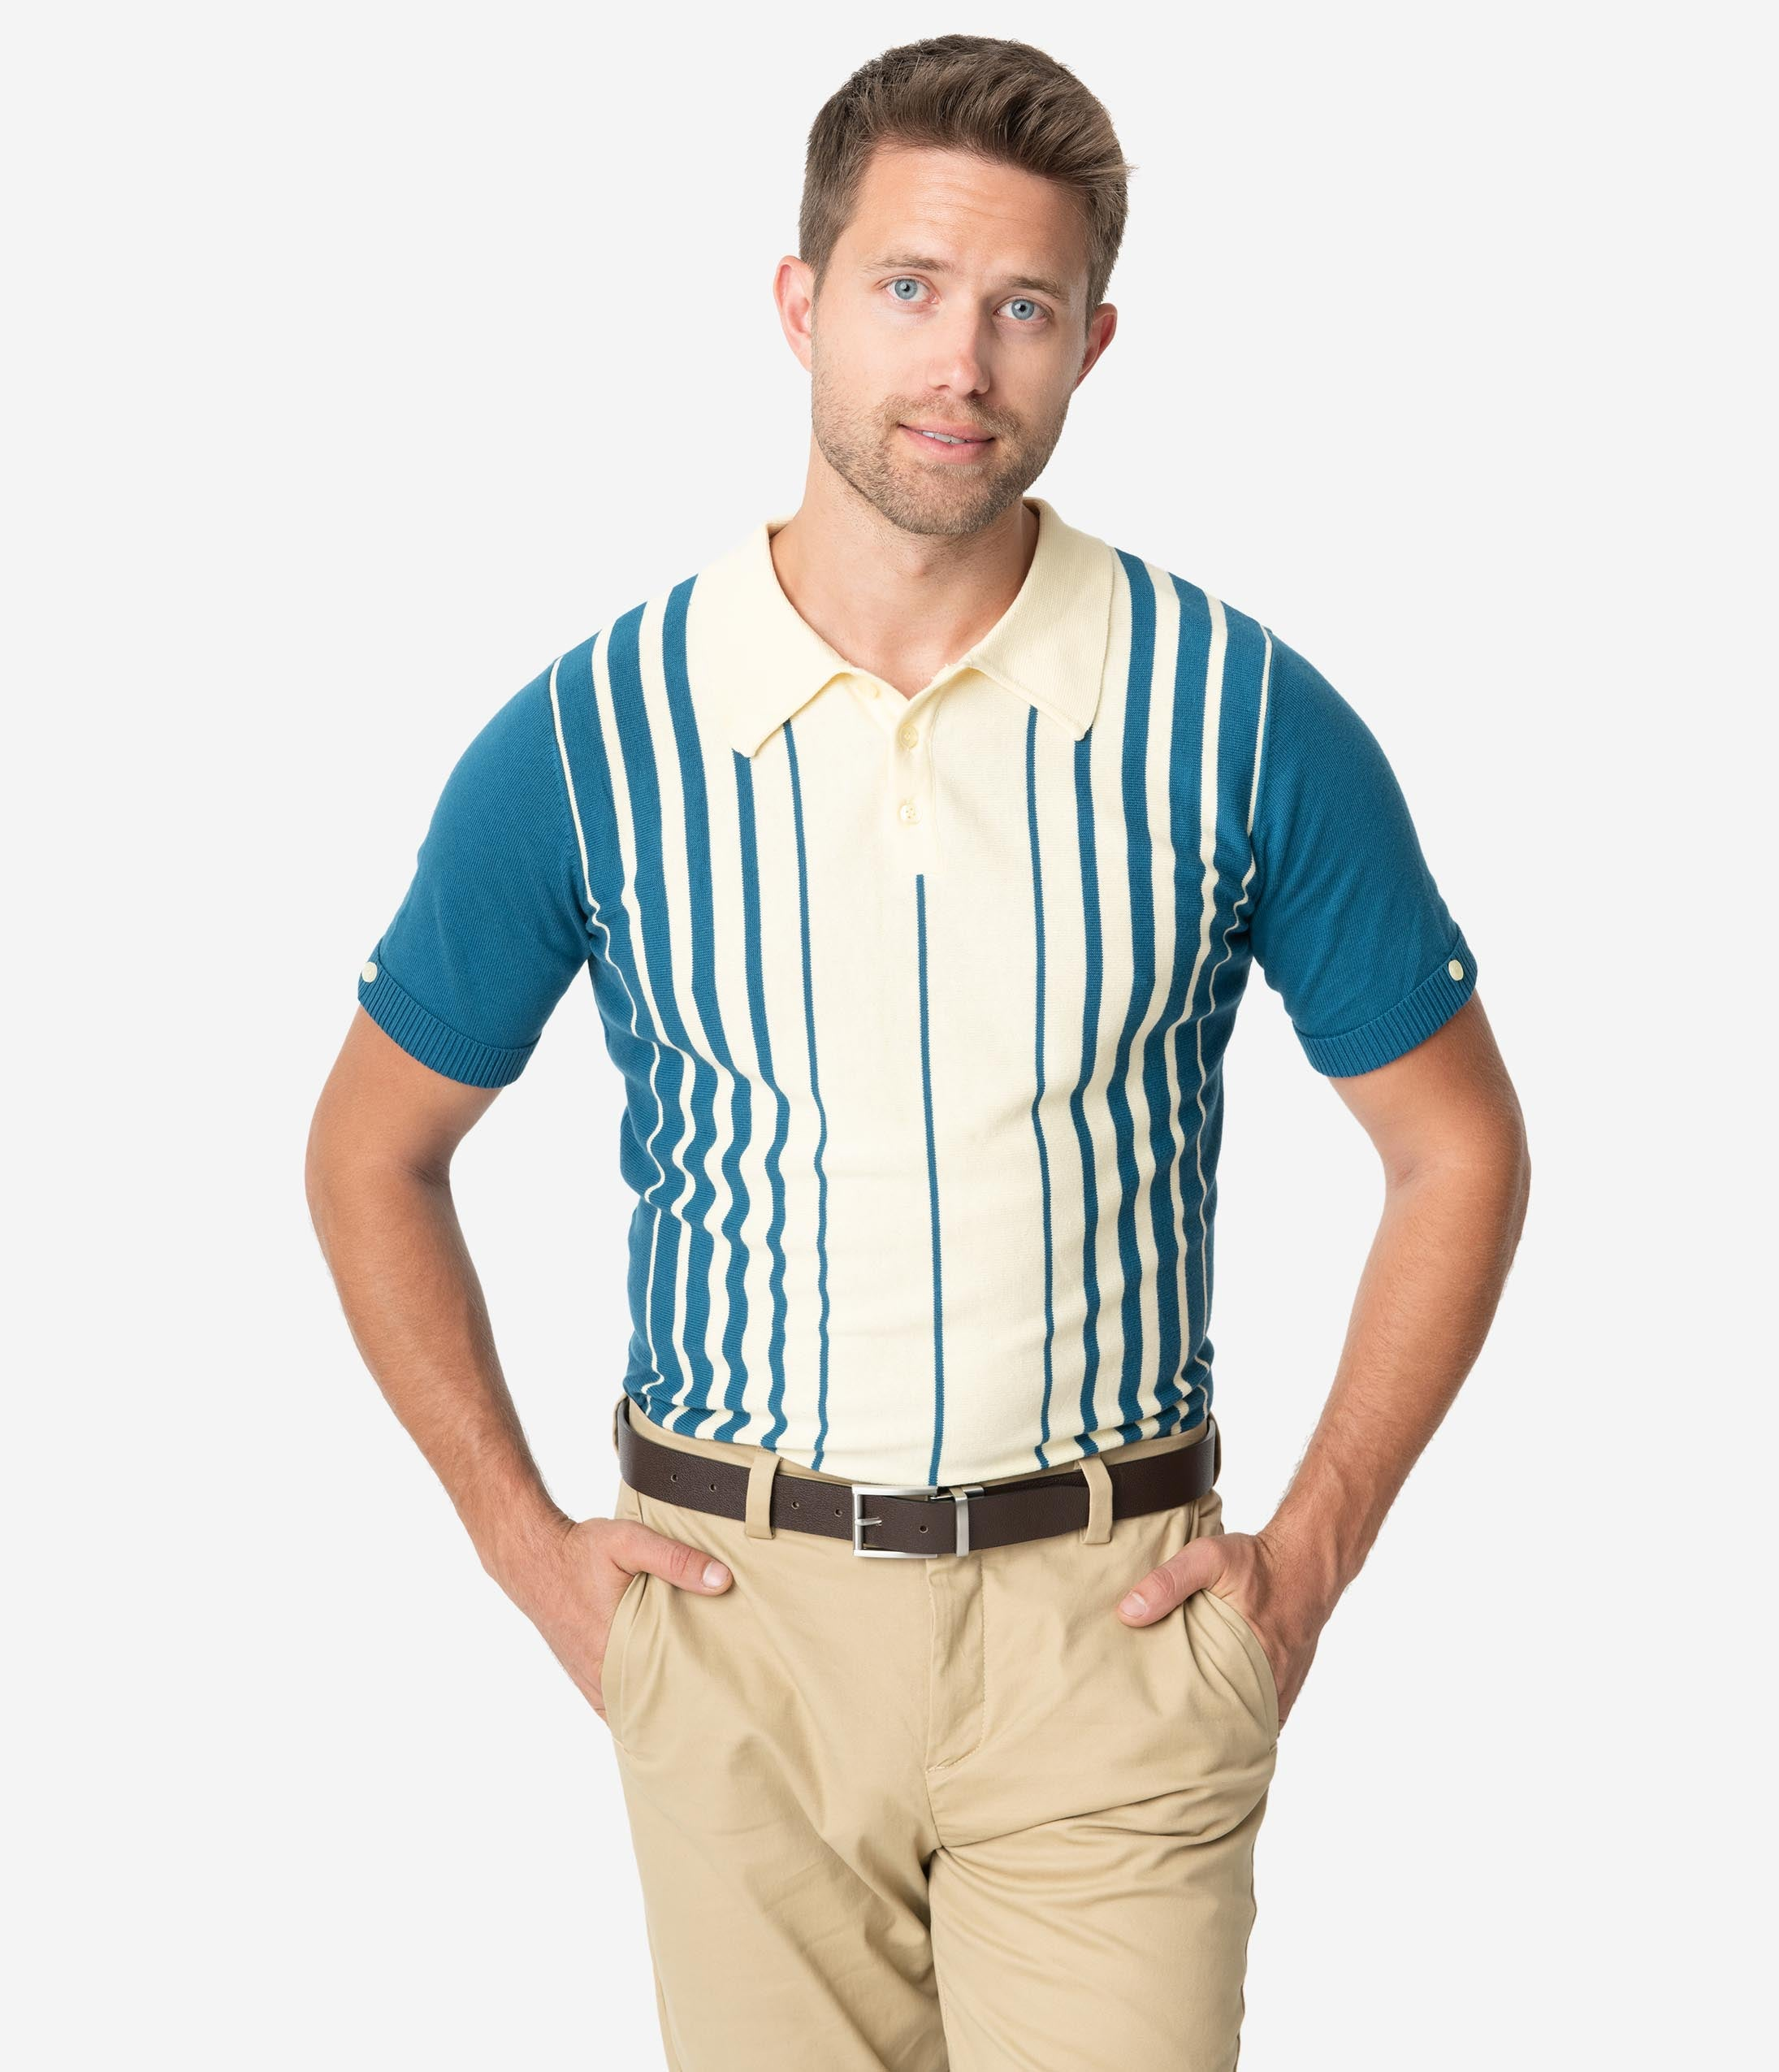 Great Gatsby White Suit- Get the Leonardo DiCaprio Look Collectif 1960S Blue  Cream Stripe Short Sleeve Knit Pablo Mens Polo Shirt $48.00 AT vintagedancer.com